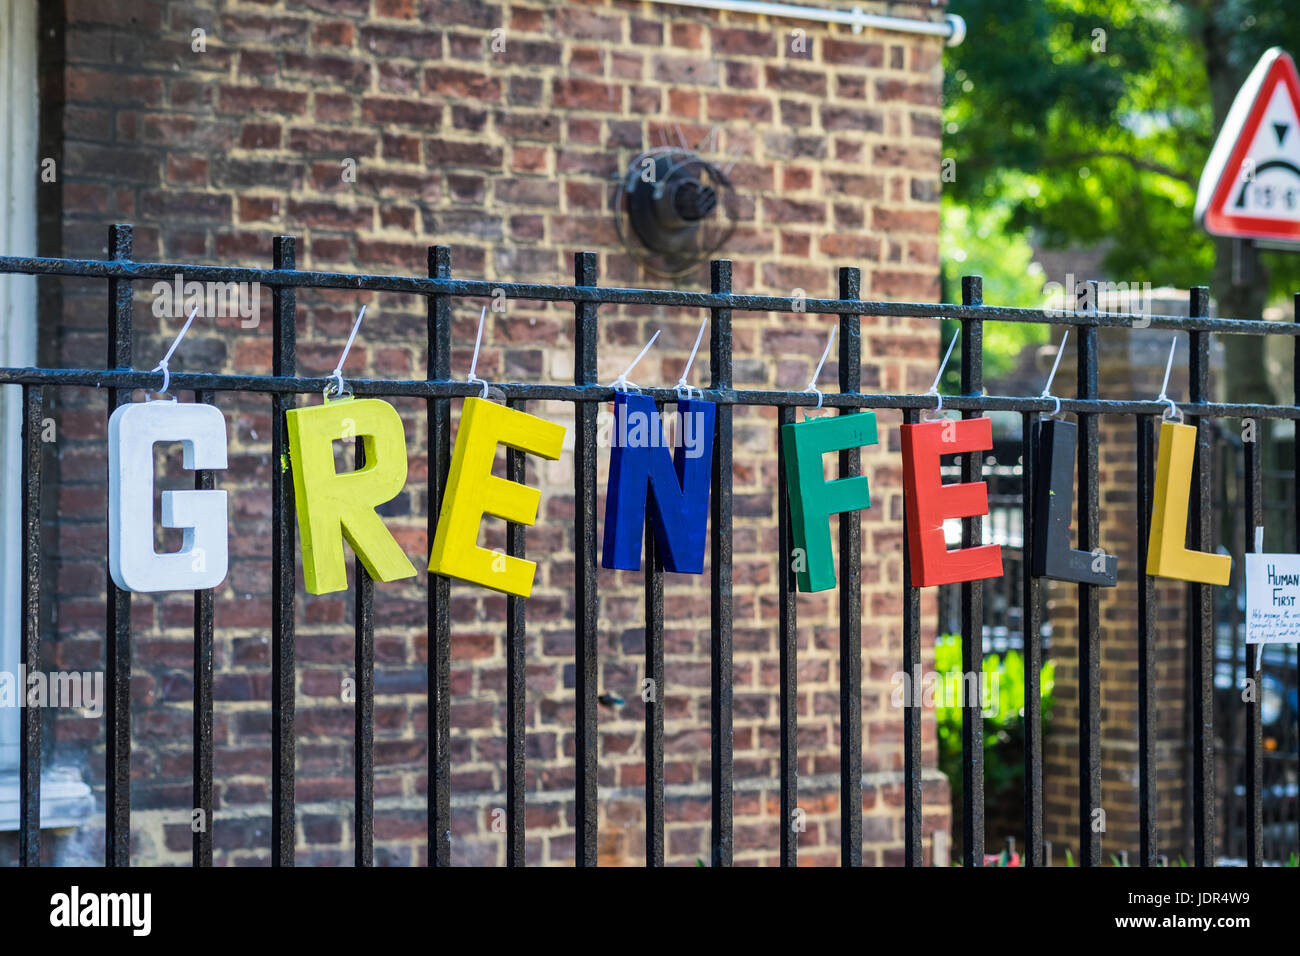 Grenfell Tower block fire, North Kensington, London, England, U.K. - Stock Image